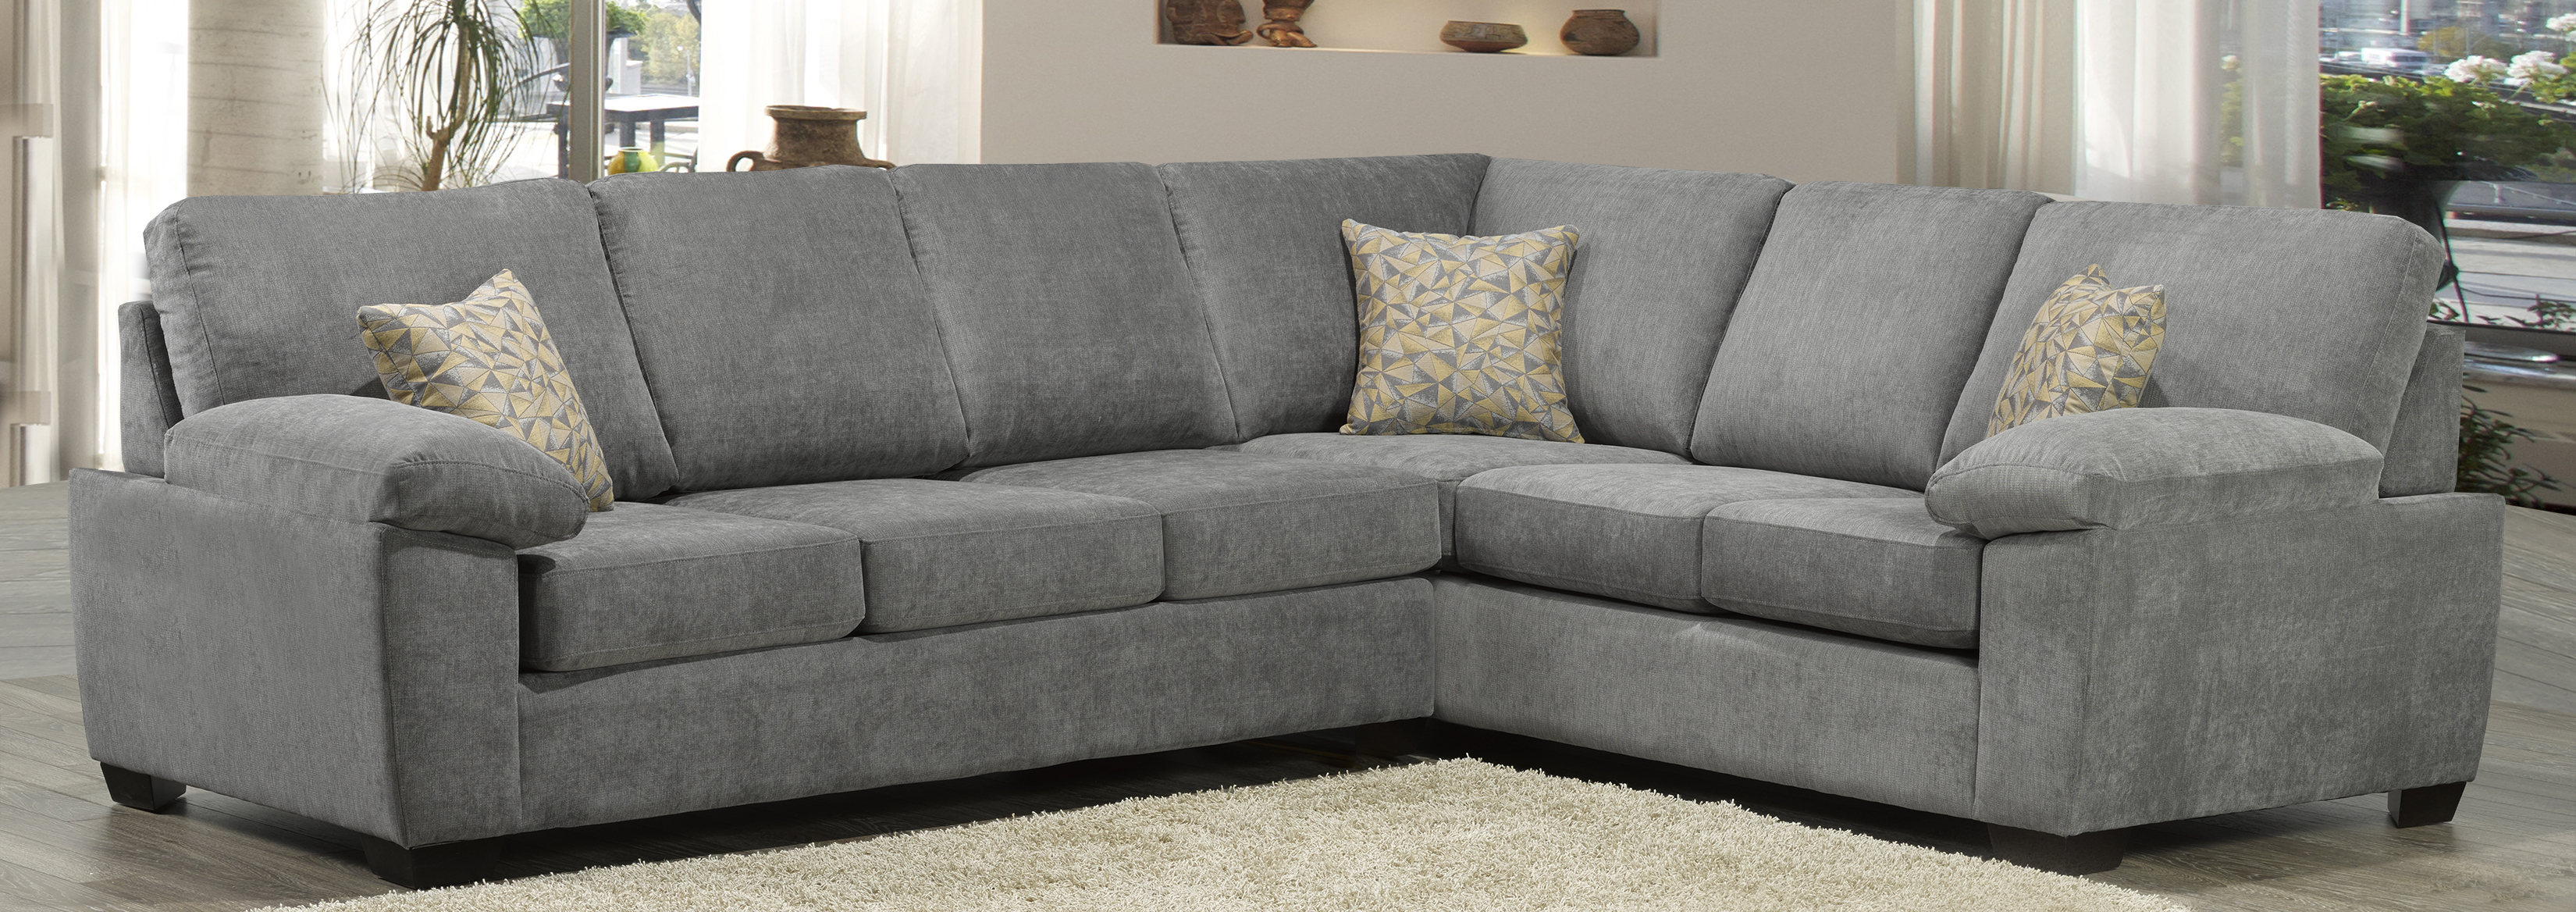 dalton sofa leon s polaris contemporary bonded leather sectional mississauga disposal taraba home review